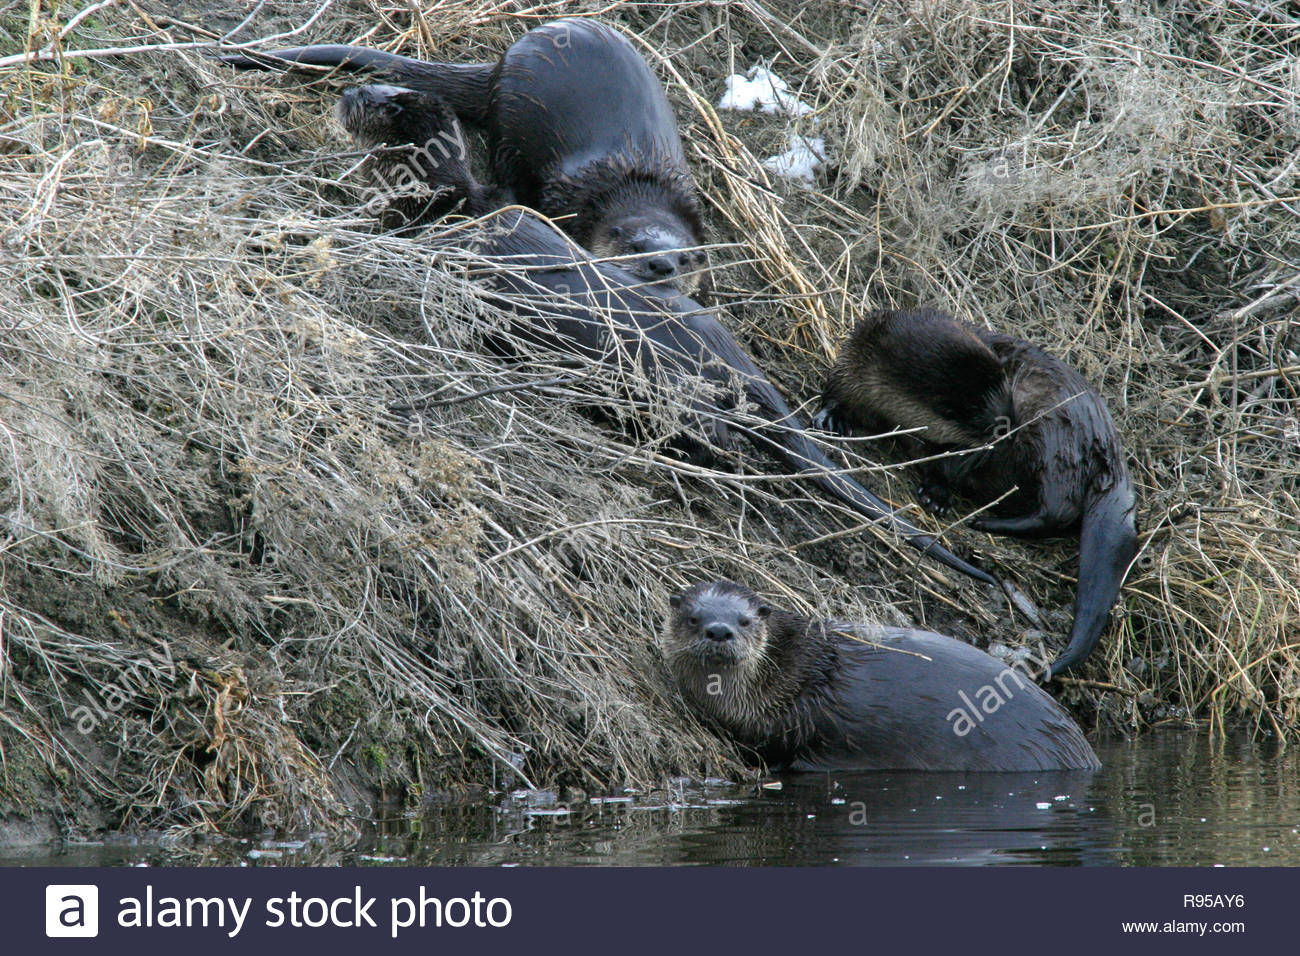 North American river otters (Lontra canadensis), Lower Klamath National Wildlife Refuge, California, USA - Stock Image